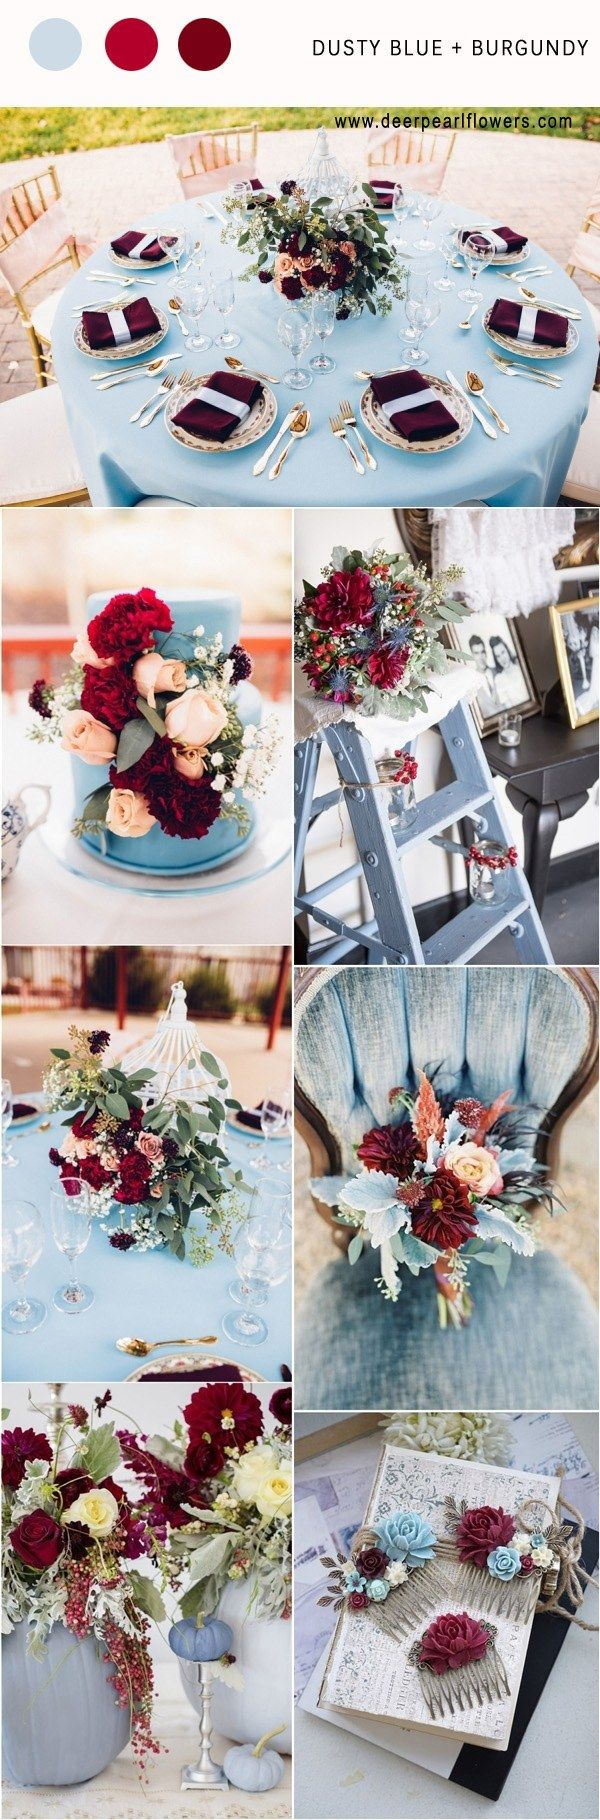 Dusty blue and burgundy wedding color palette idea / http://www.deerpearlflowers.com/dusty-blue-wedding-color-combos/ #weddingcolors #weddingideas #bluewedding #dustyblue